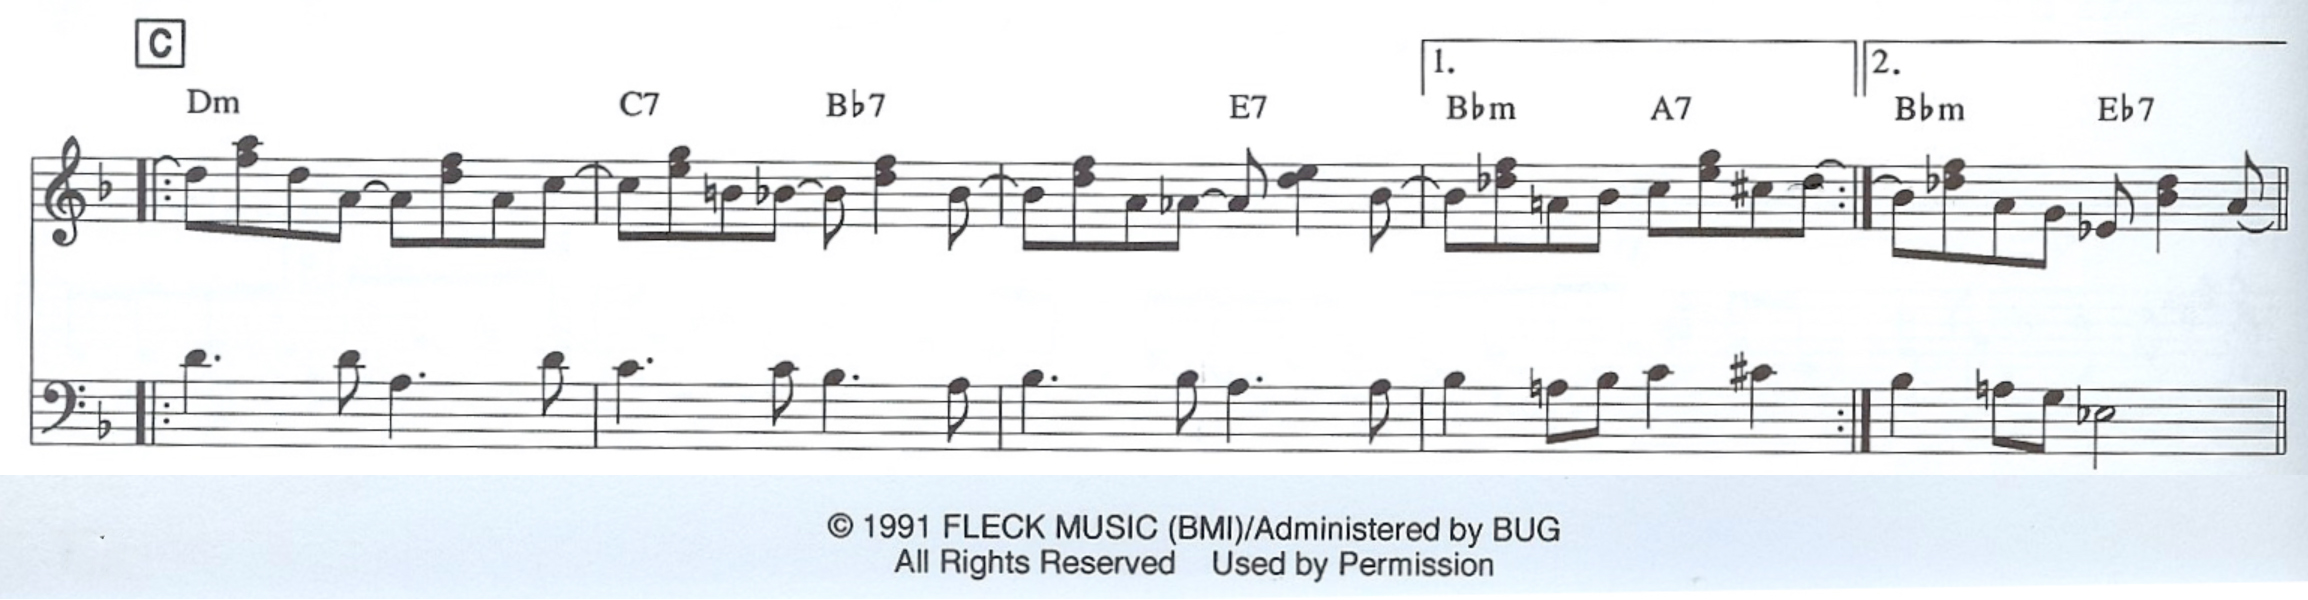 excerpt from the leadsheet (in staff notation) of Béla Fleck's composition